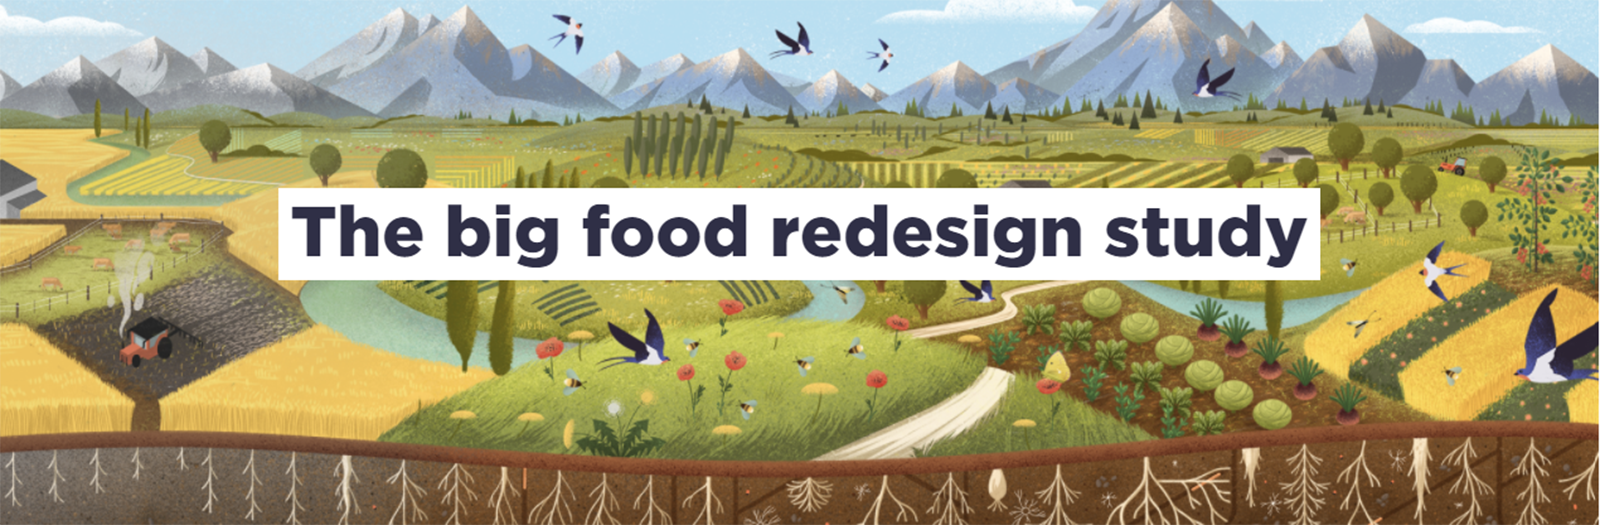 The big food redesign study